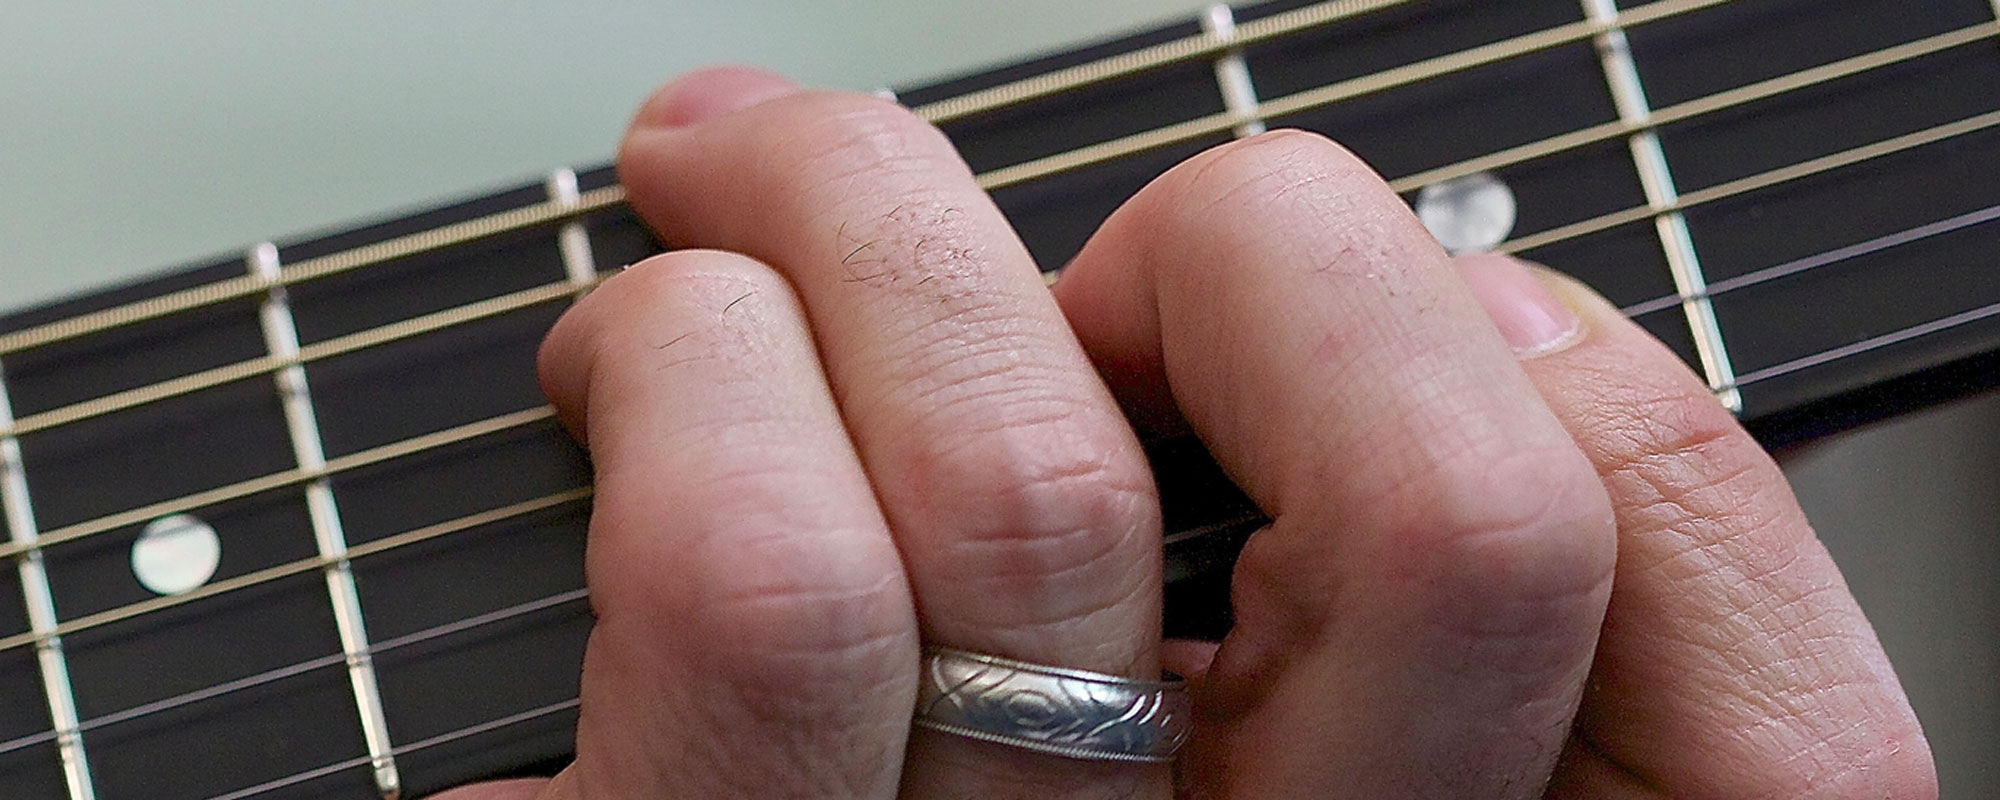 fingers playing a chord on a guitar